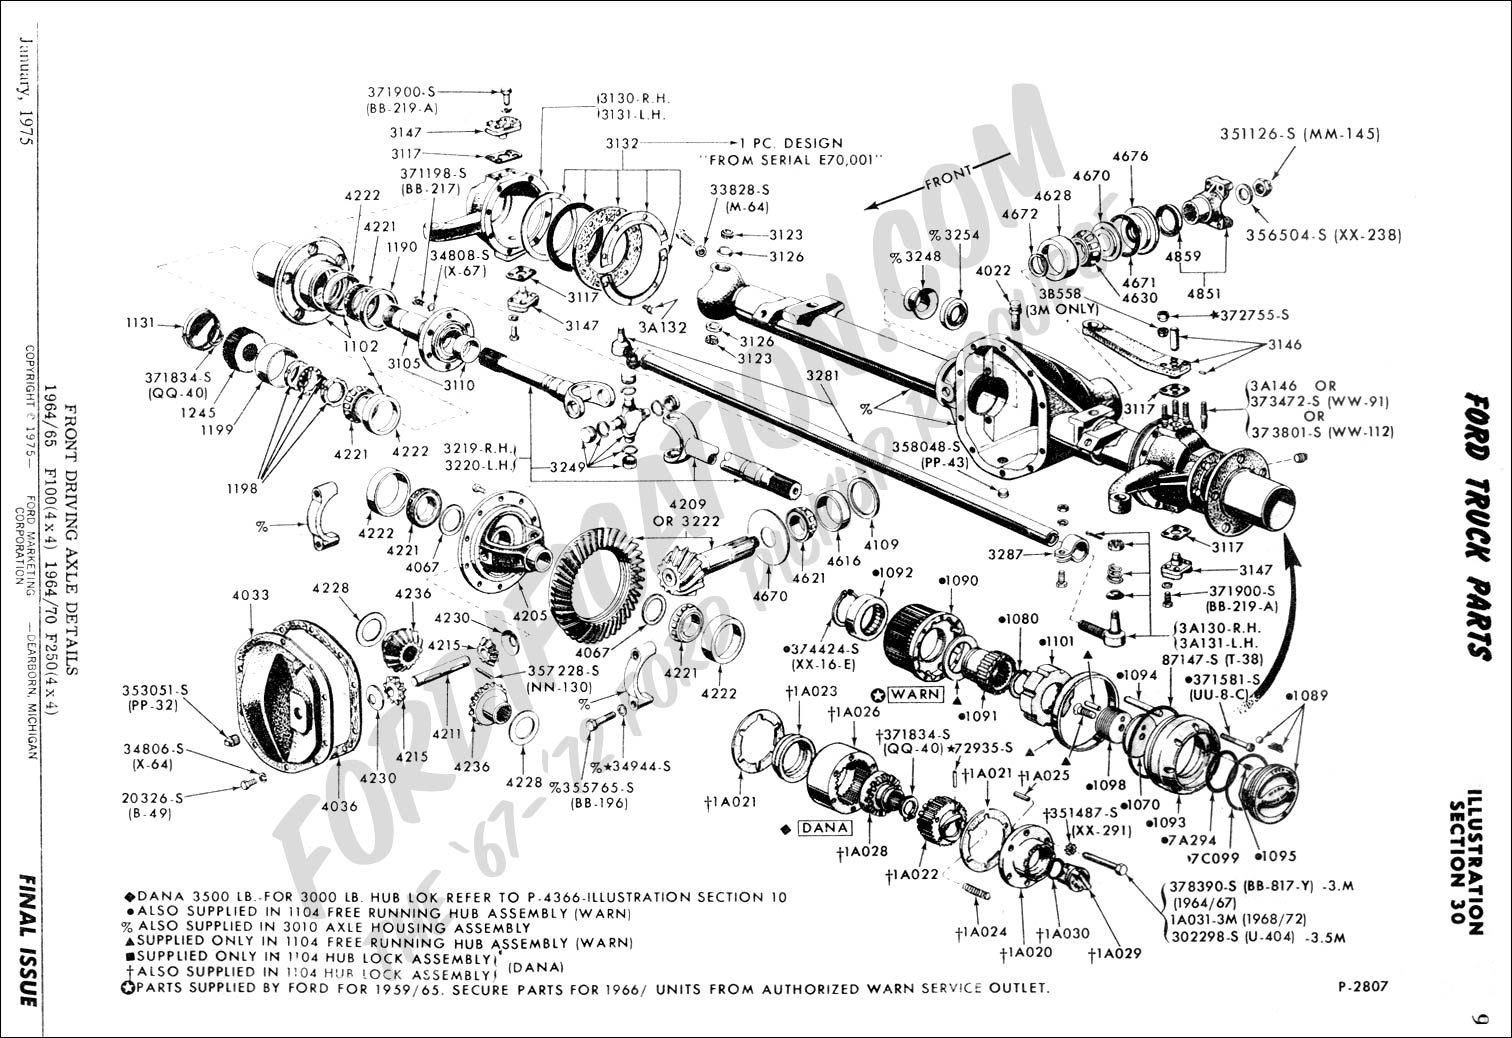 2002 Ford F250 Super Duty 4wd Front Hub Diagram Auto